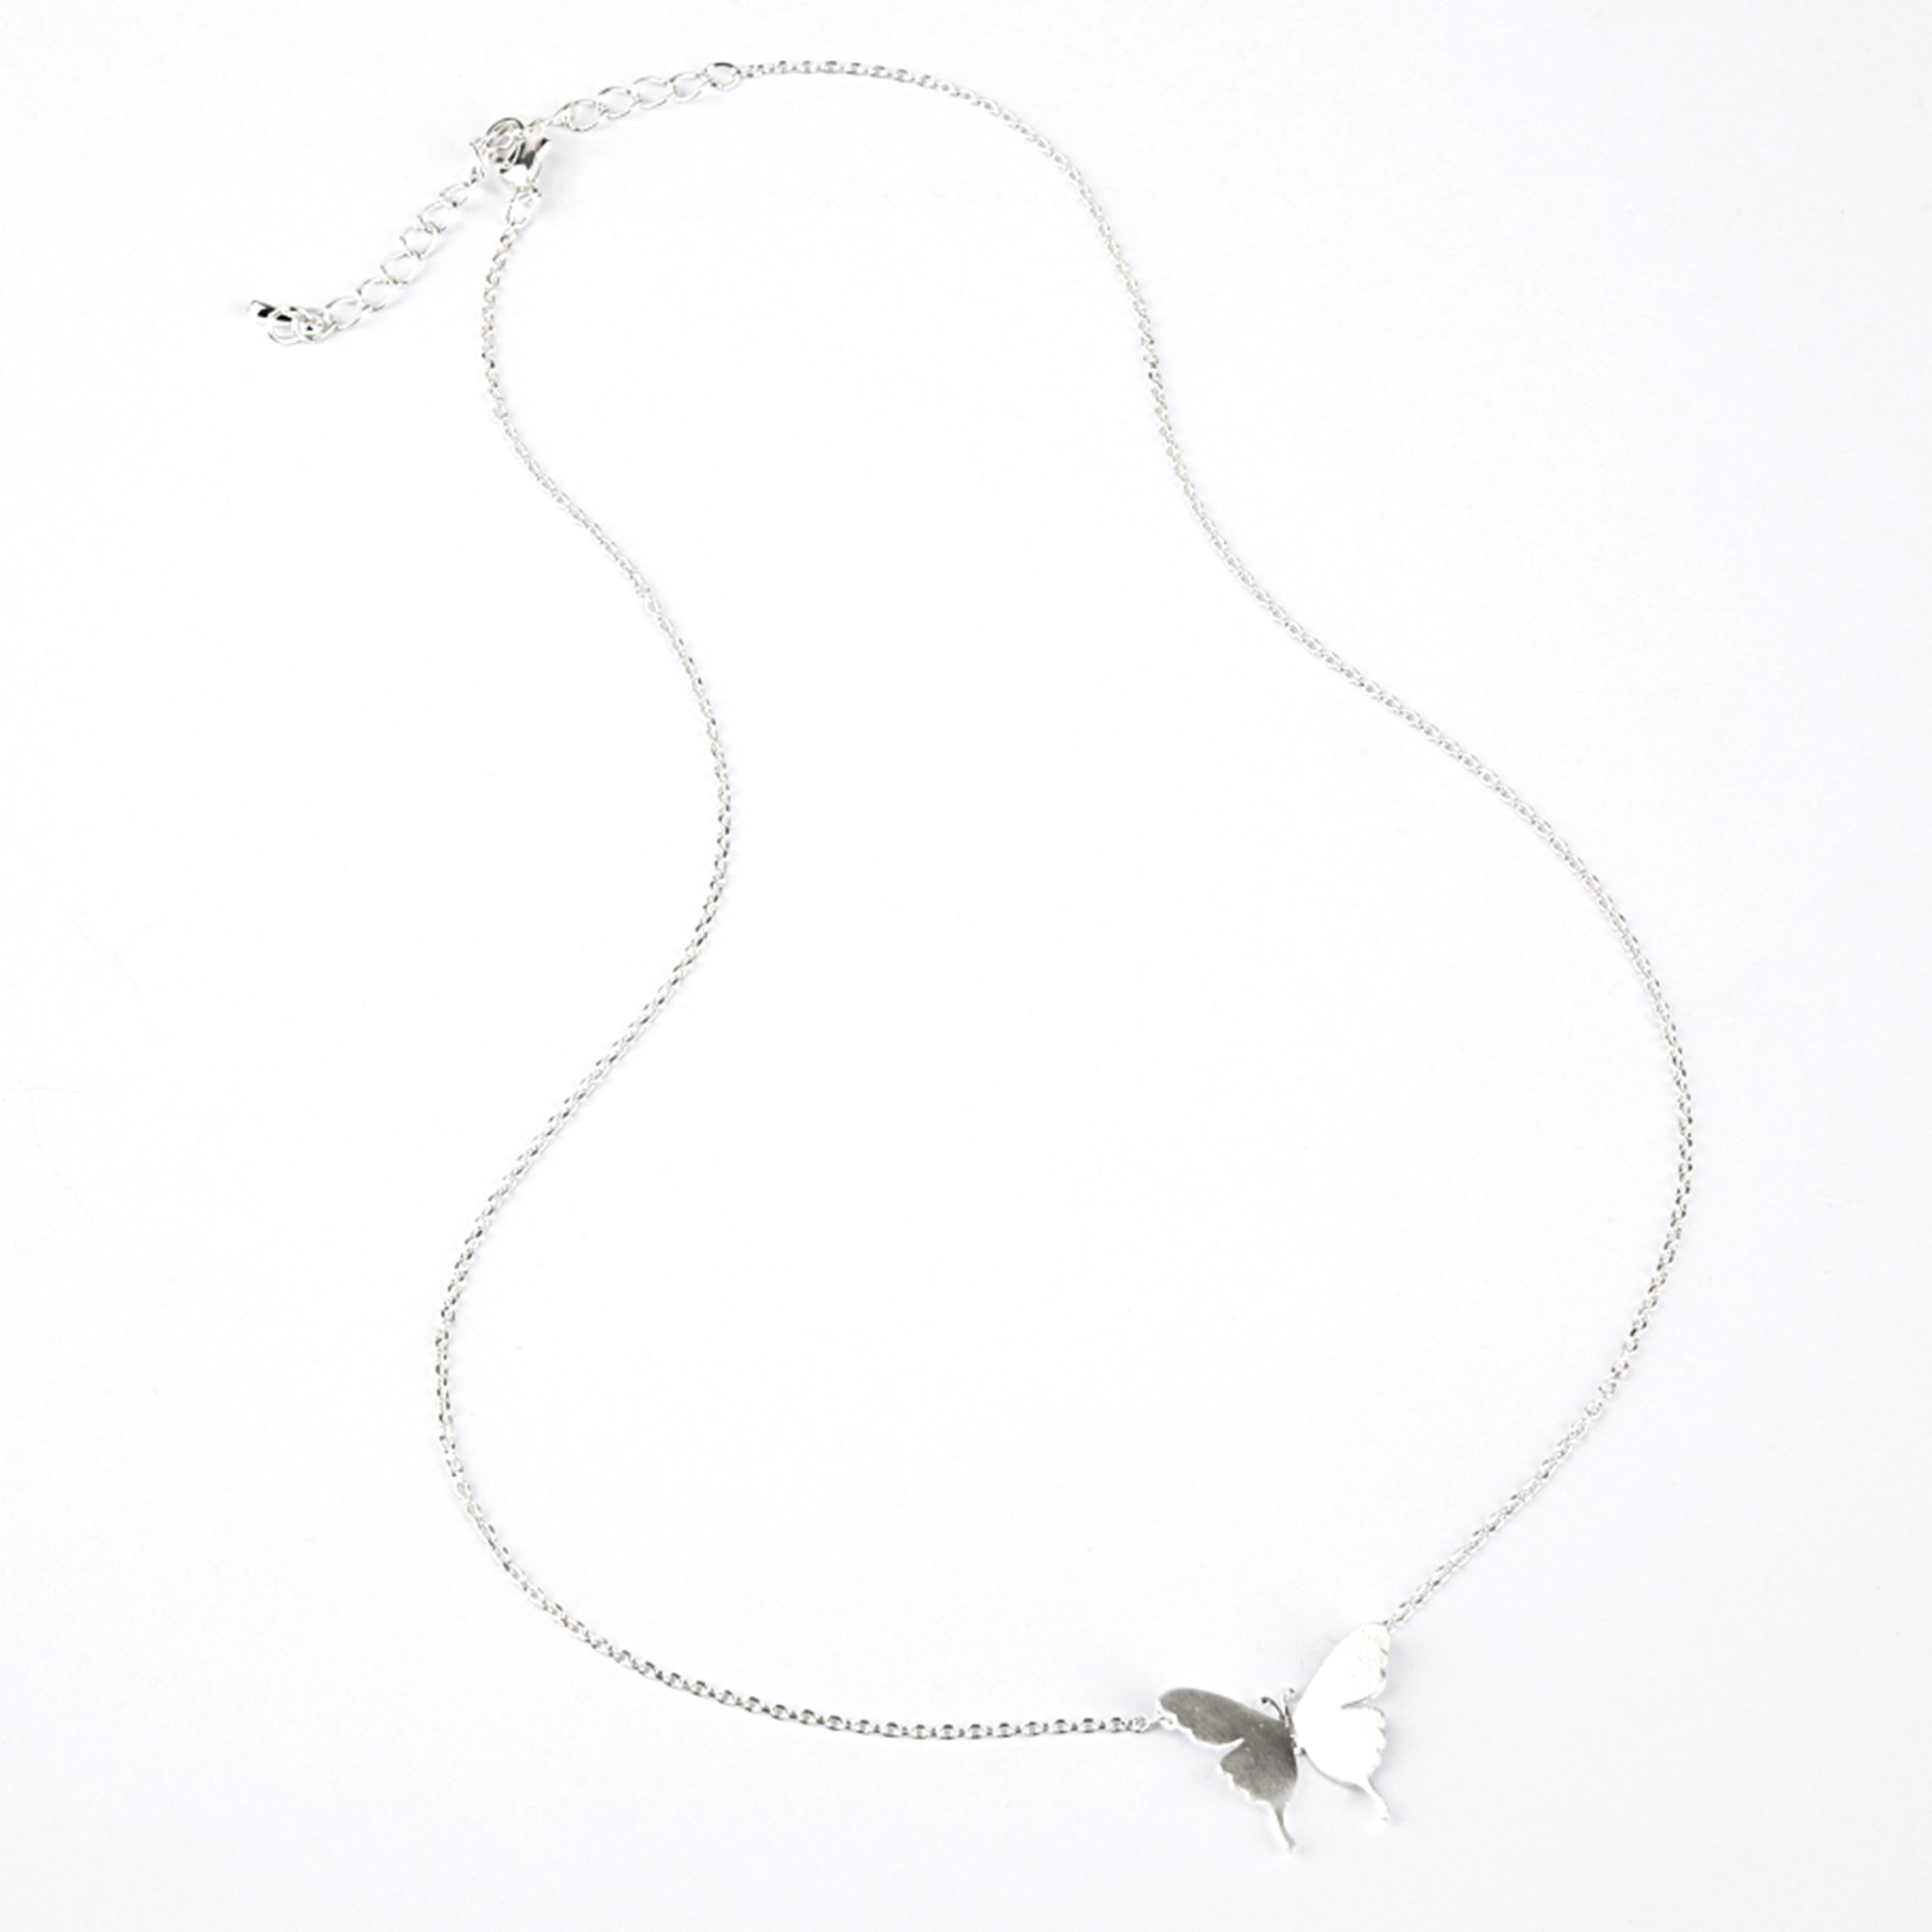 MIRMARU Jewerly Collection Silver Plated Love Pendant Fashion Necklace.